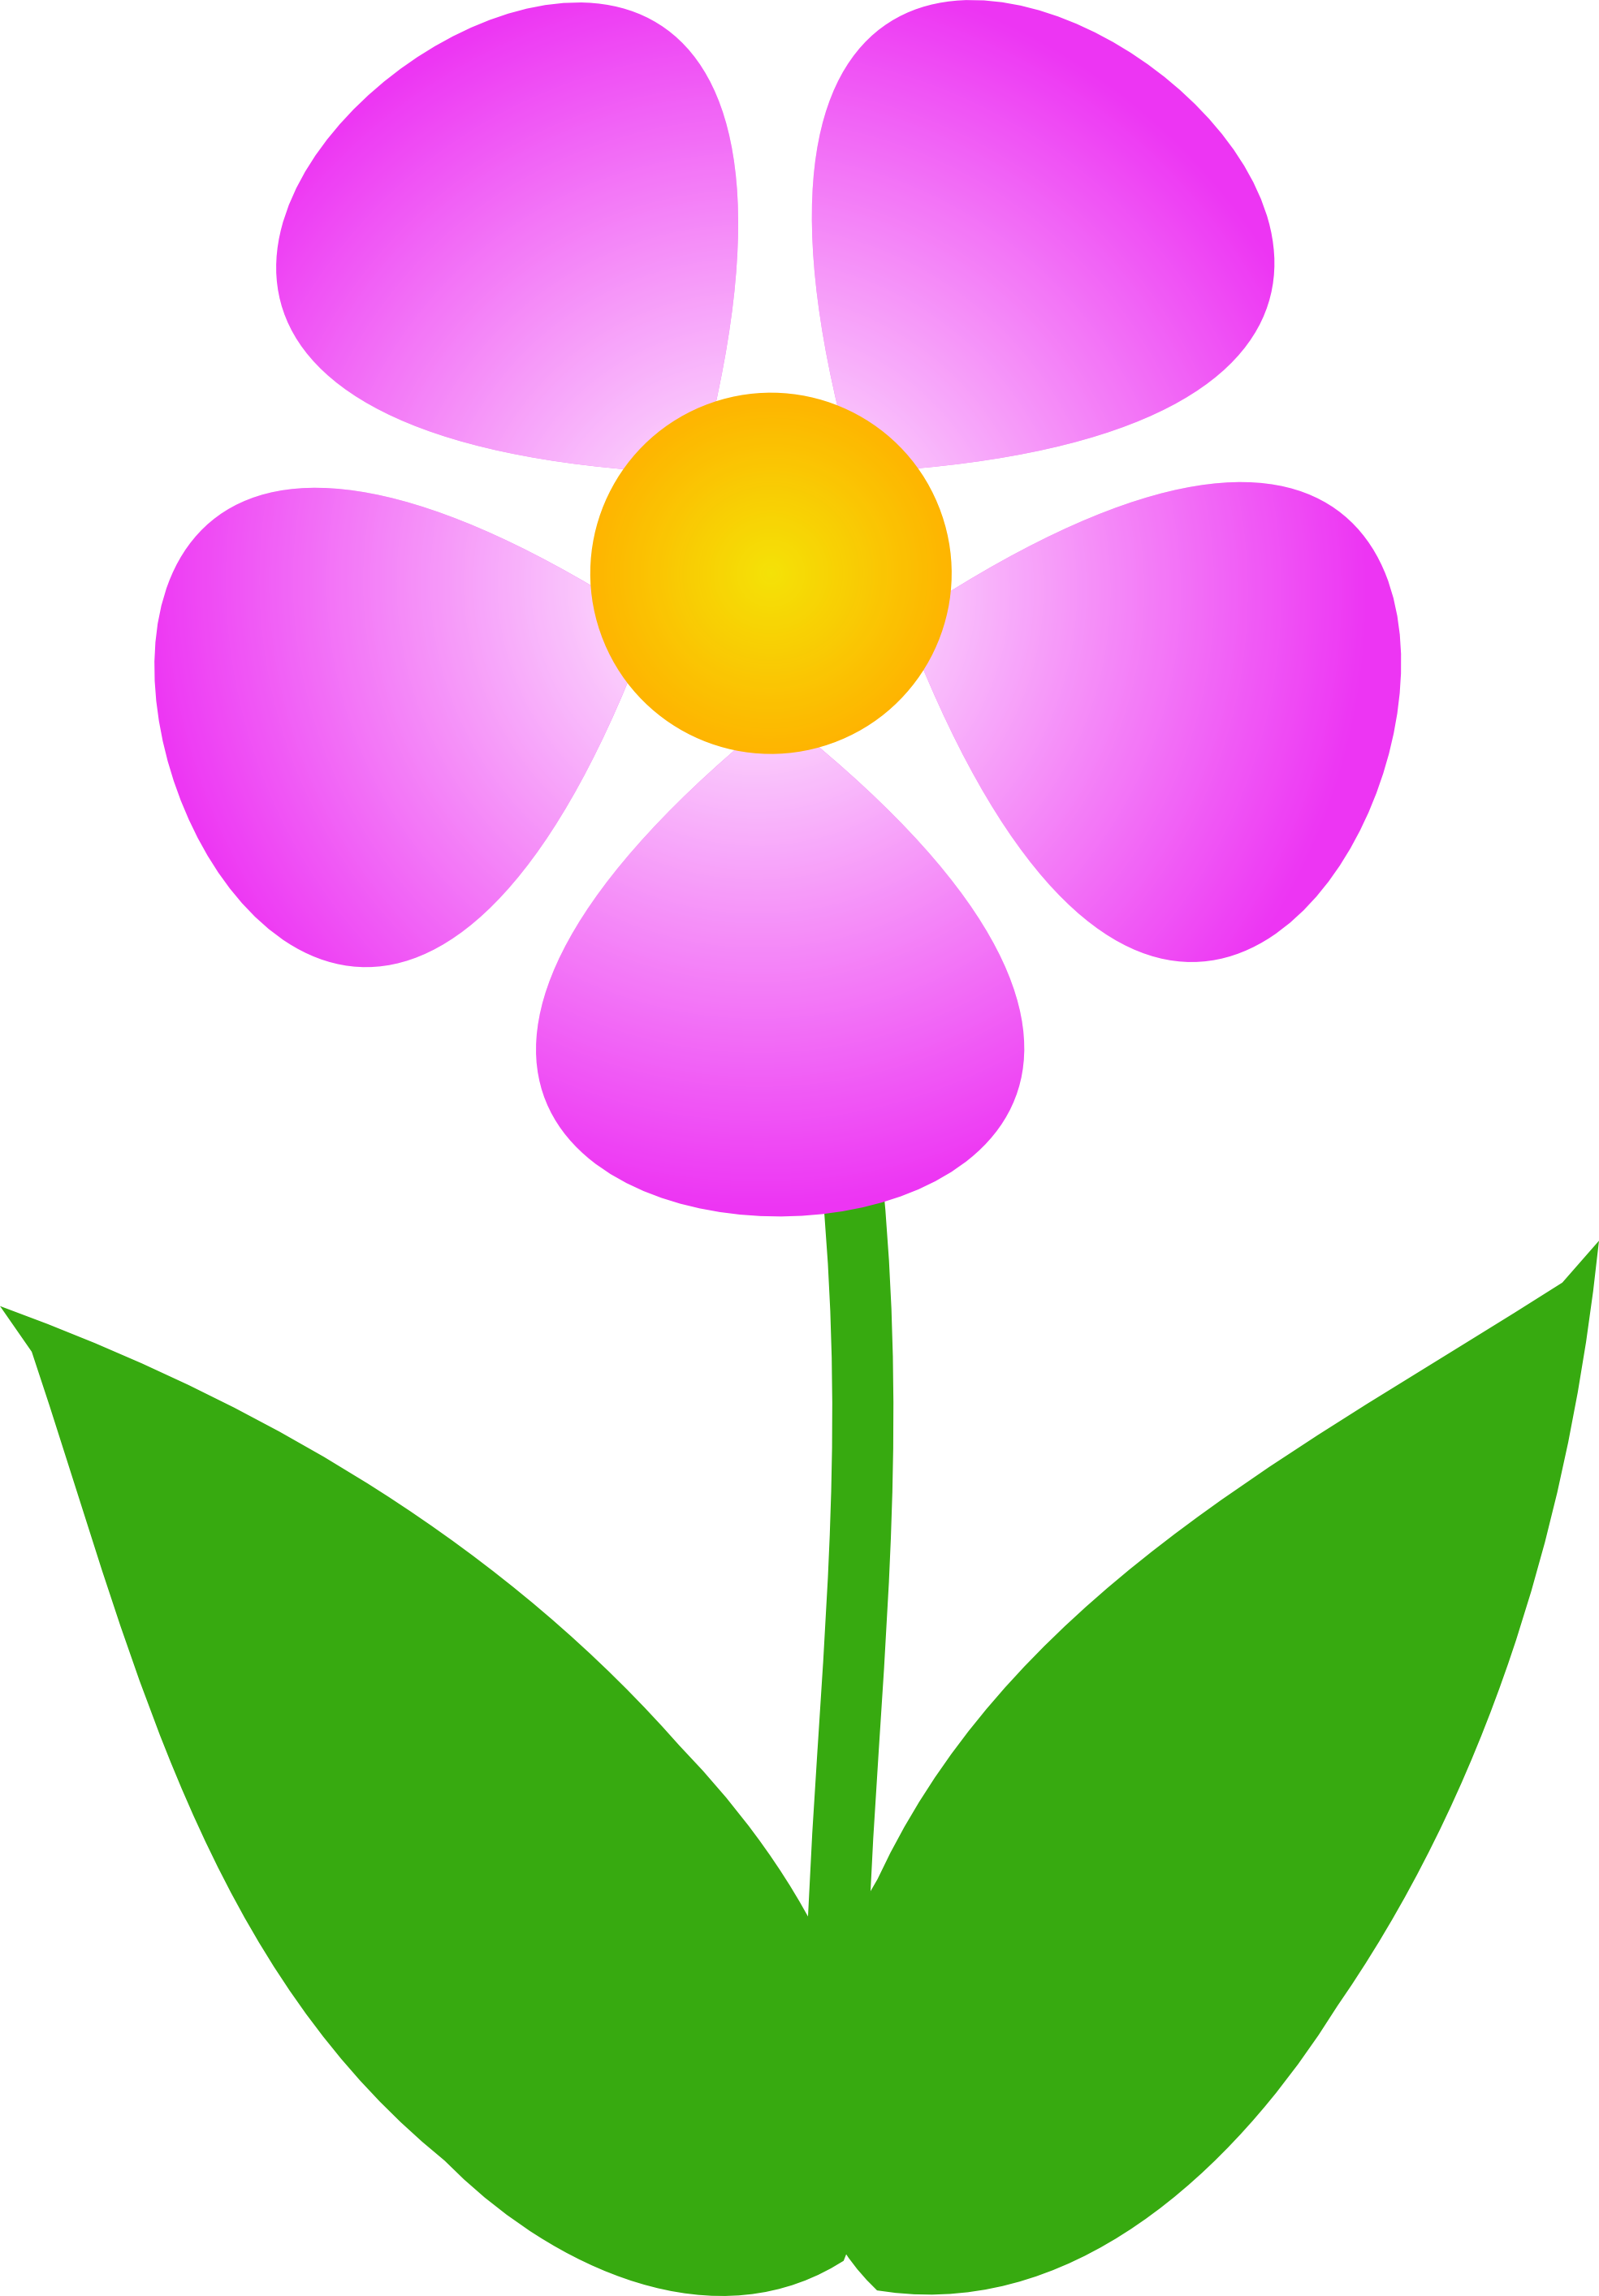 Free clipart images of flowers .